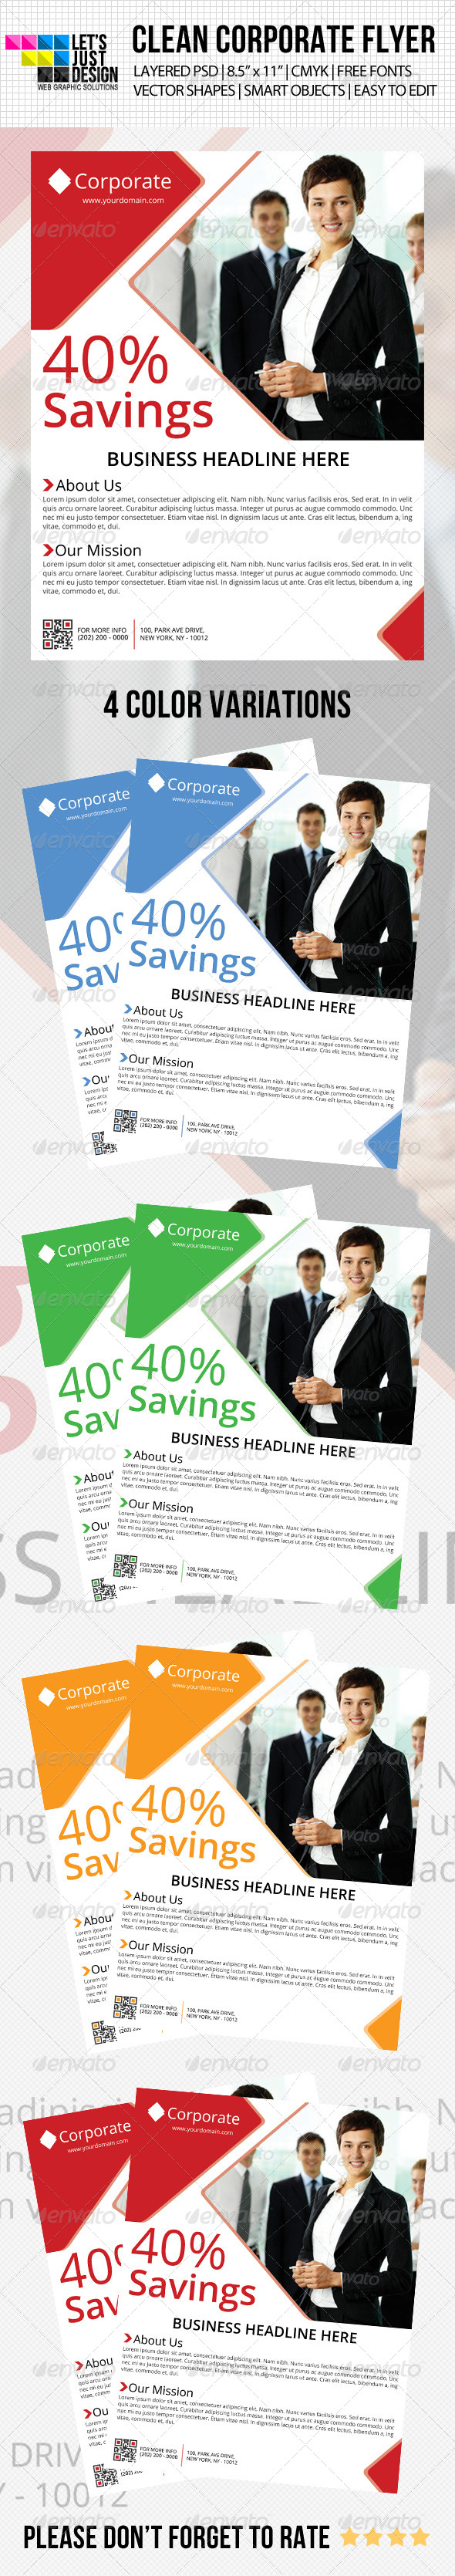 GraphicRiver Clean Corporate Flyer 4765447